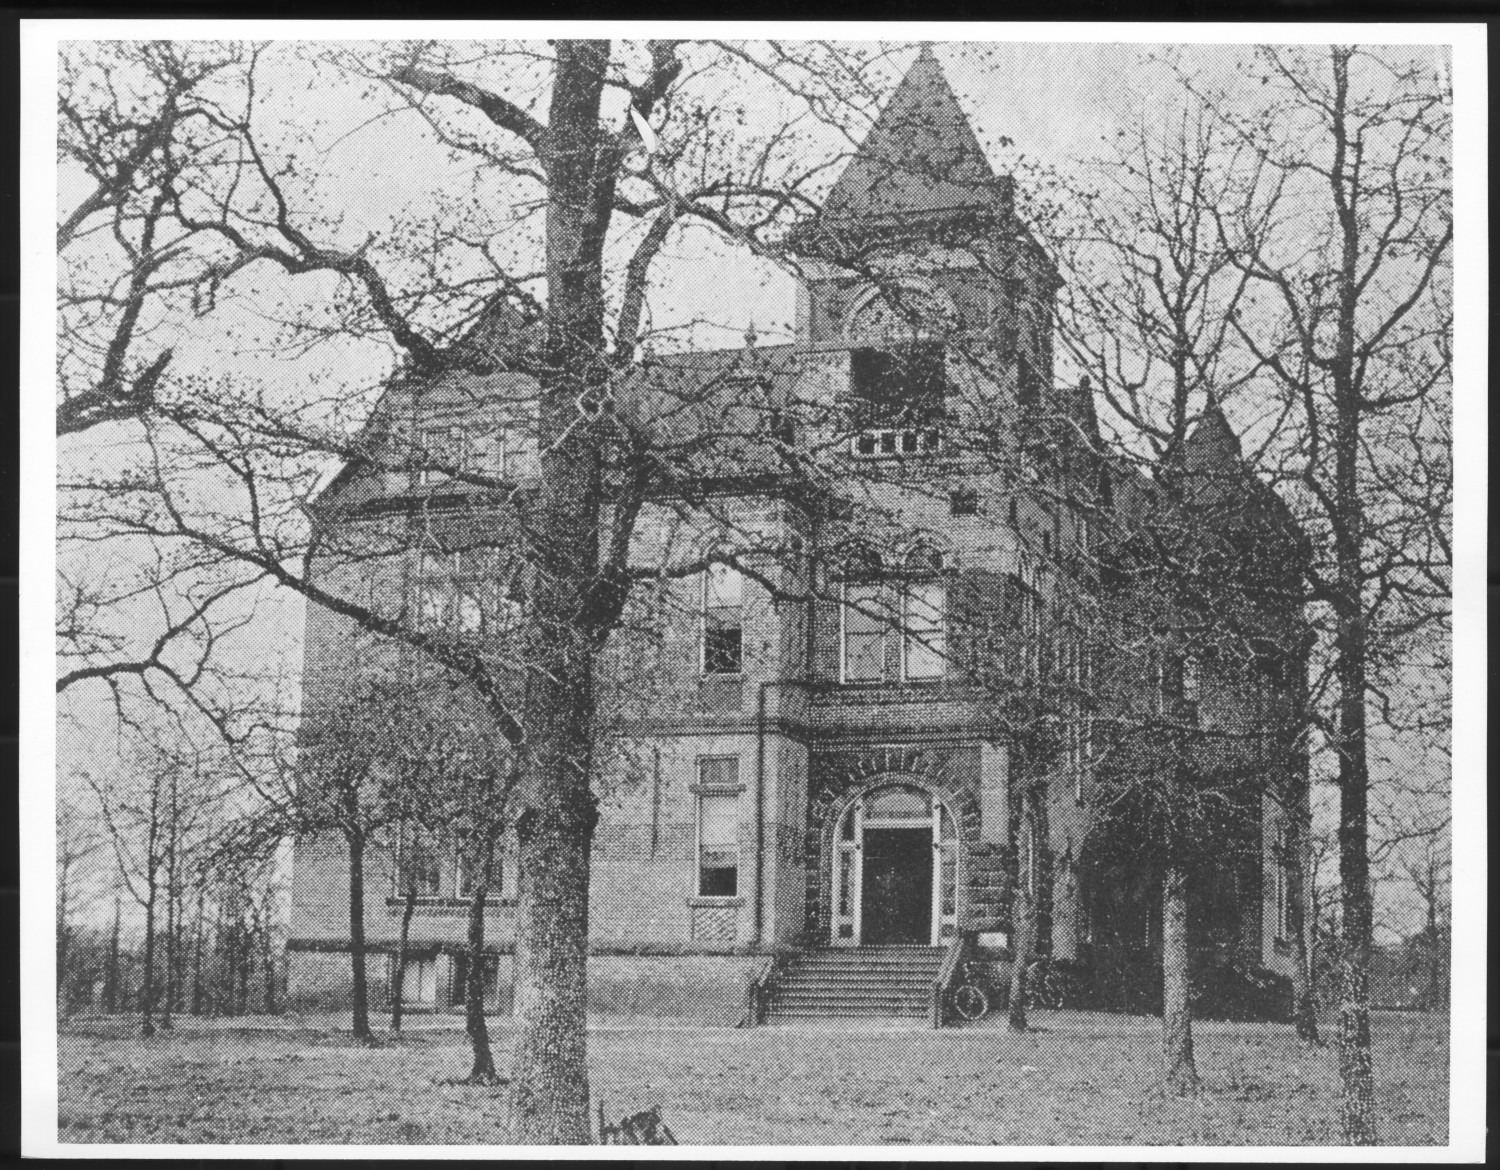 Black and white photo of brick building with small staircase leading to arched front door on the right. building has many windows and a small tower above main doorway with pyramid shaped roof. many leafless trees stand in front of building partially obscuring it.